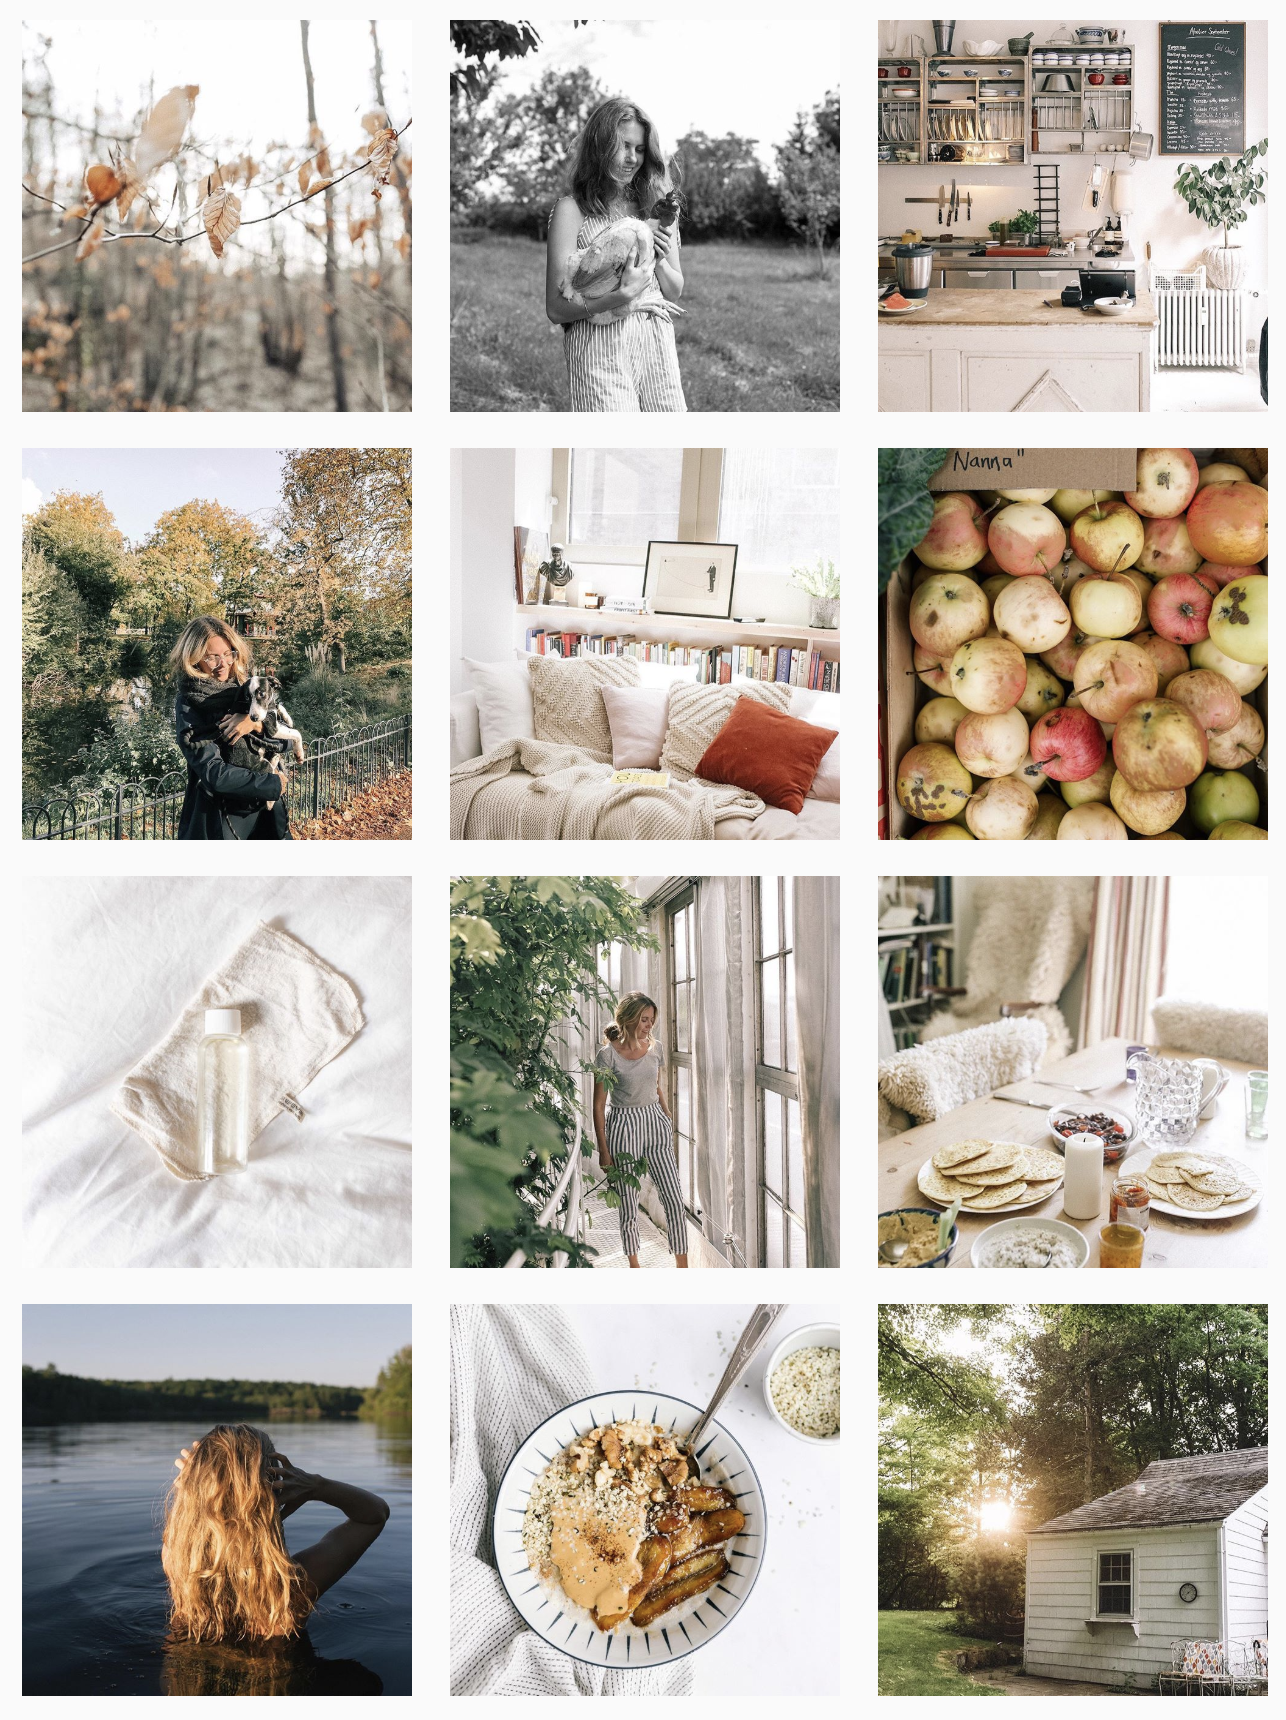 We are in AWE of Tania's feed. We love her minimalist lifestyle and the imagery she shares with the world… it's like we've stepped into a storybook!